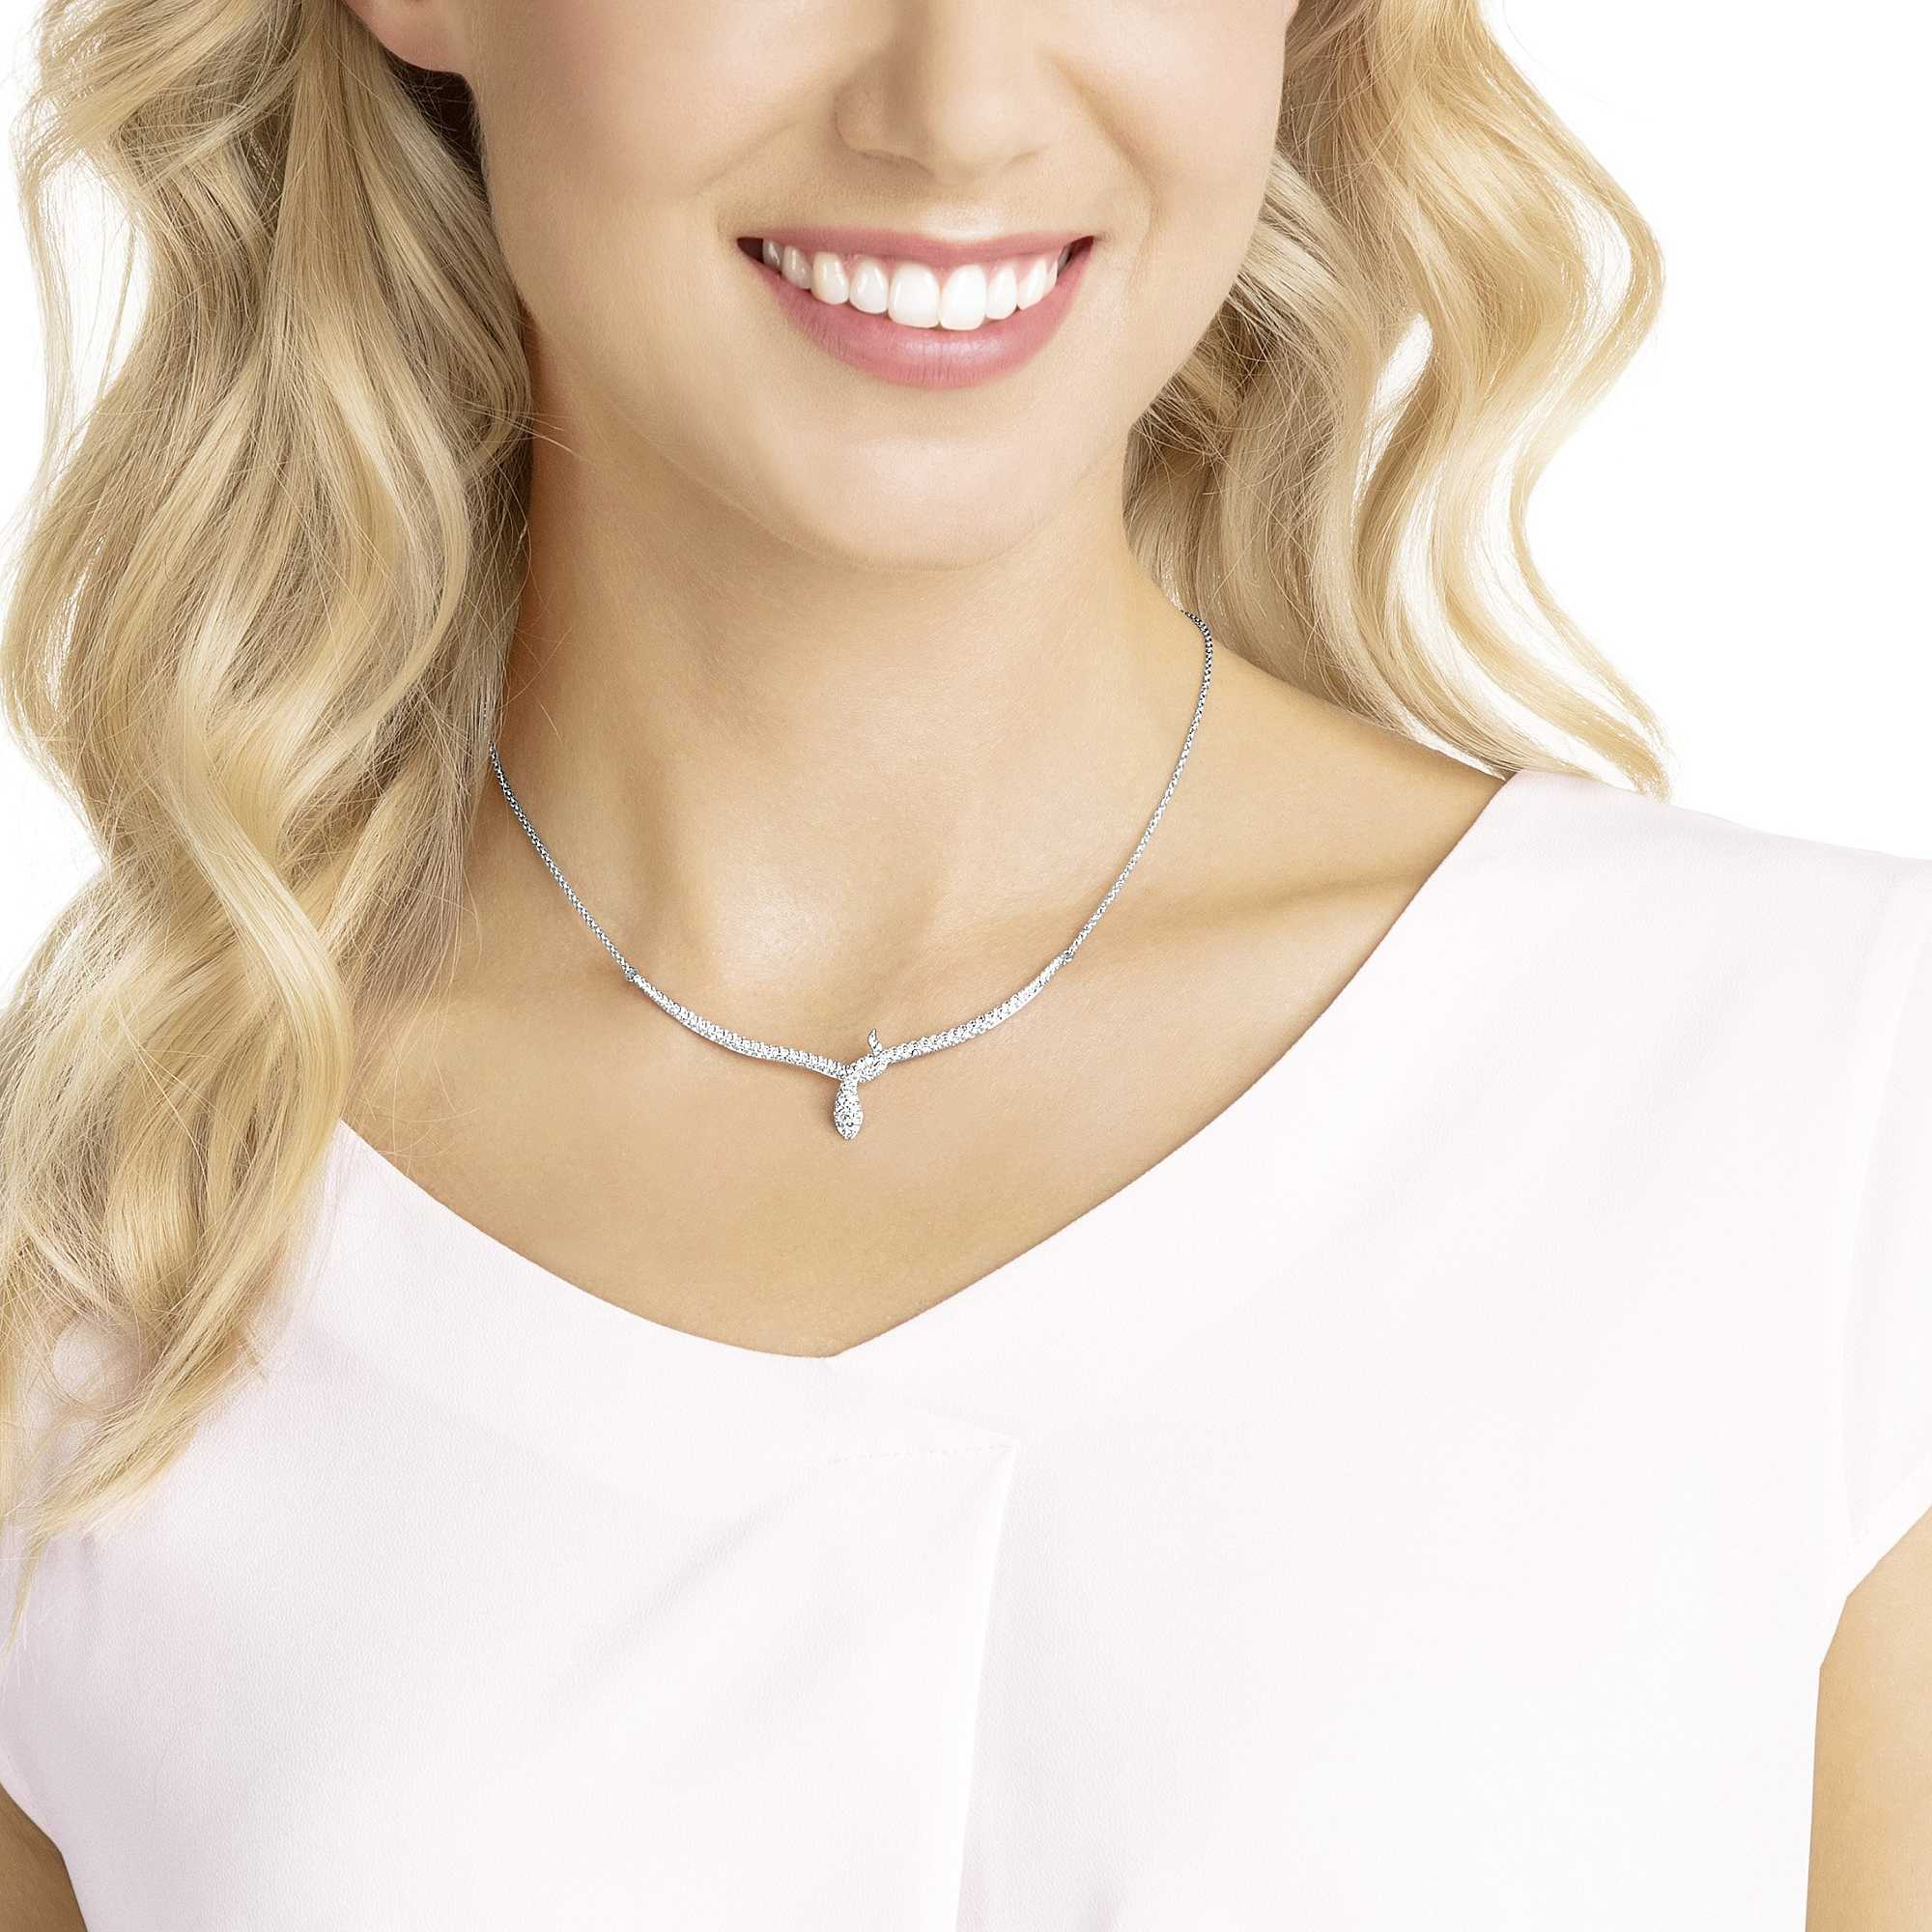 SWAROVSKI LESLIE NECKLACE, WHITE, RHODIUM PLATING